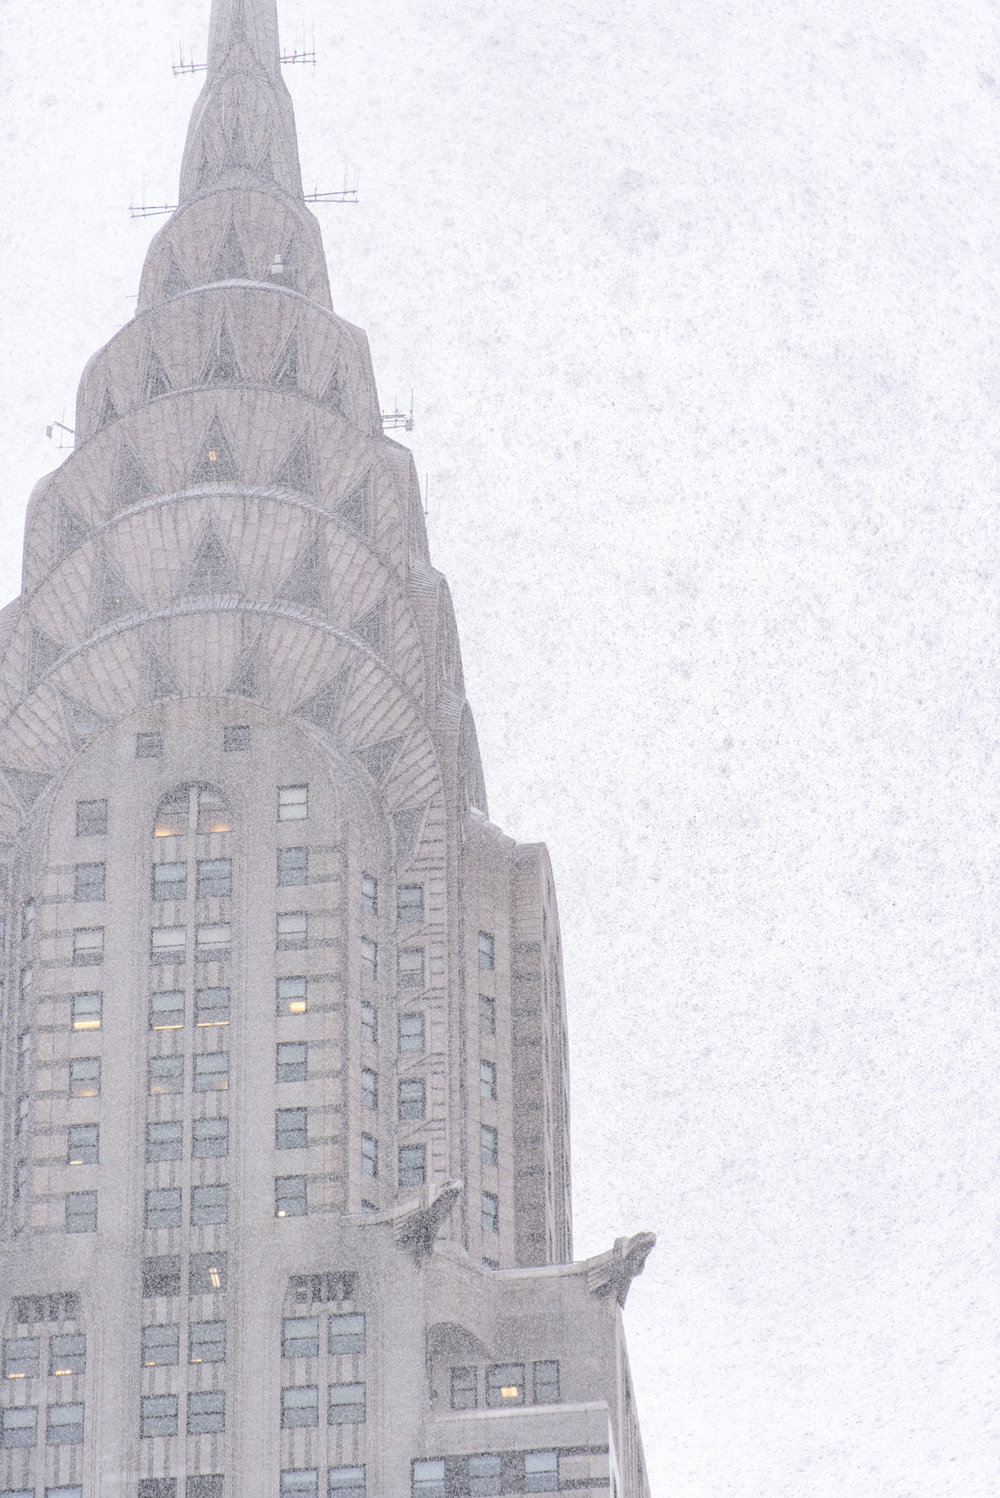 Location: Chrysler Building on 42nd Street